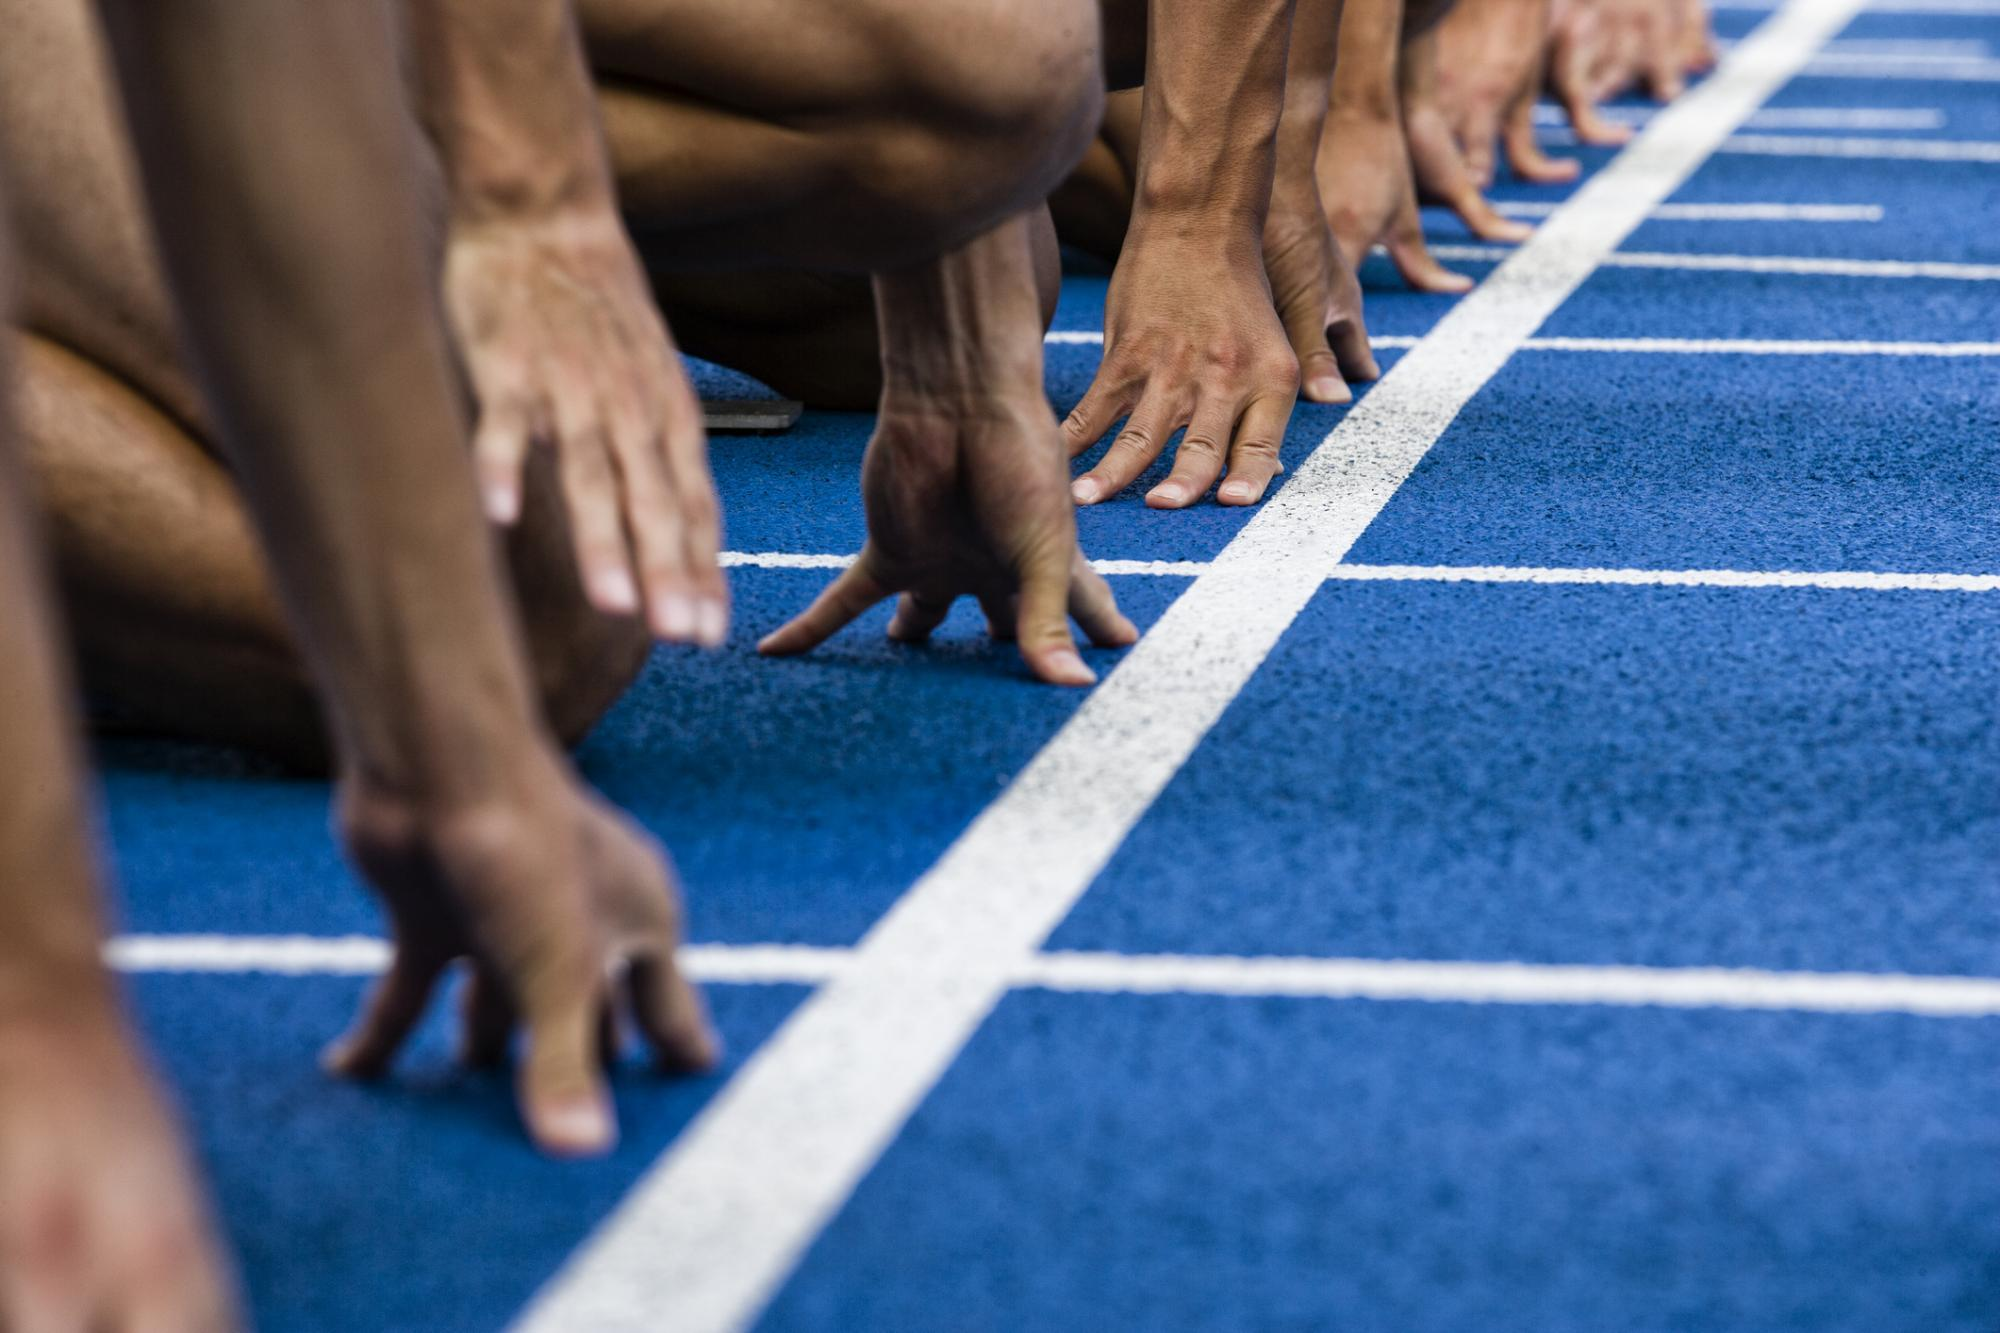 The hands of runners in start position at the start line of a race on a track.